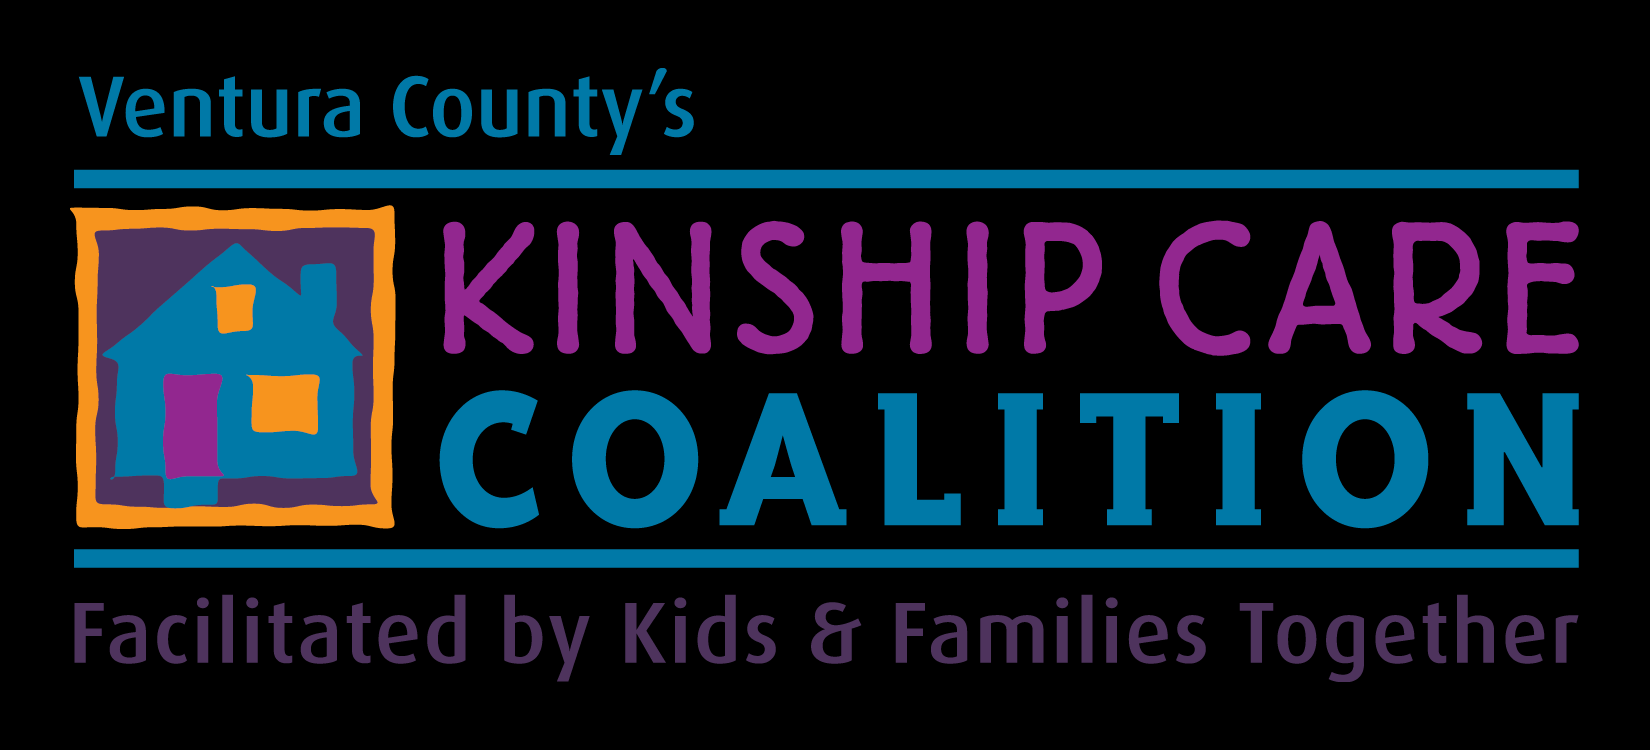 Simi Valley / Moorpark Kinship Coalition 24 Boys and Girls Clubs of Simi Valley & Moorpark Catholic Charities Child Development Resources of Ventura County Child Development Center Interface Kinship